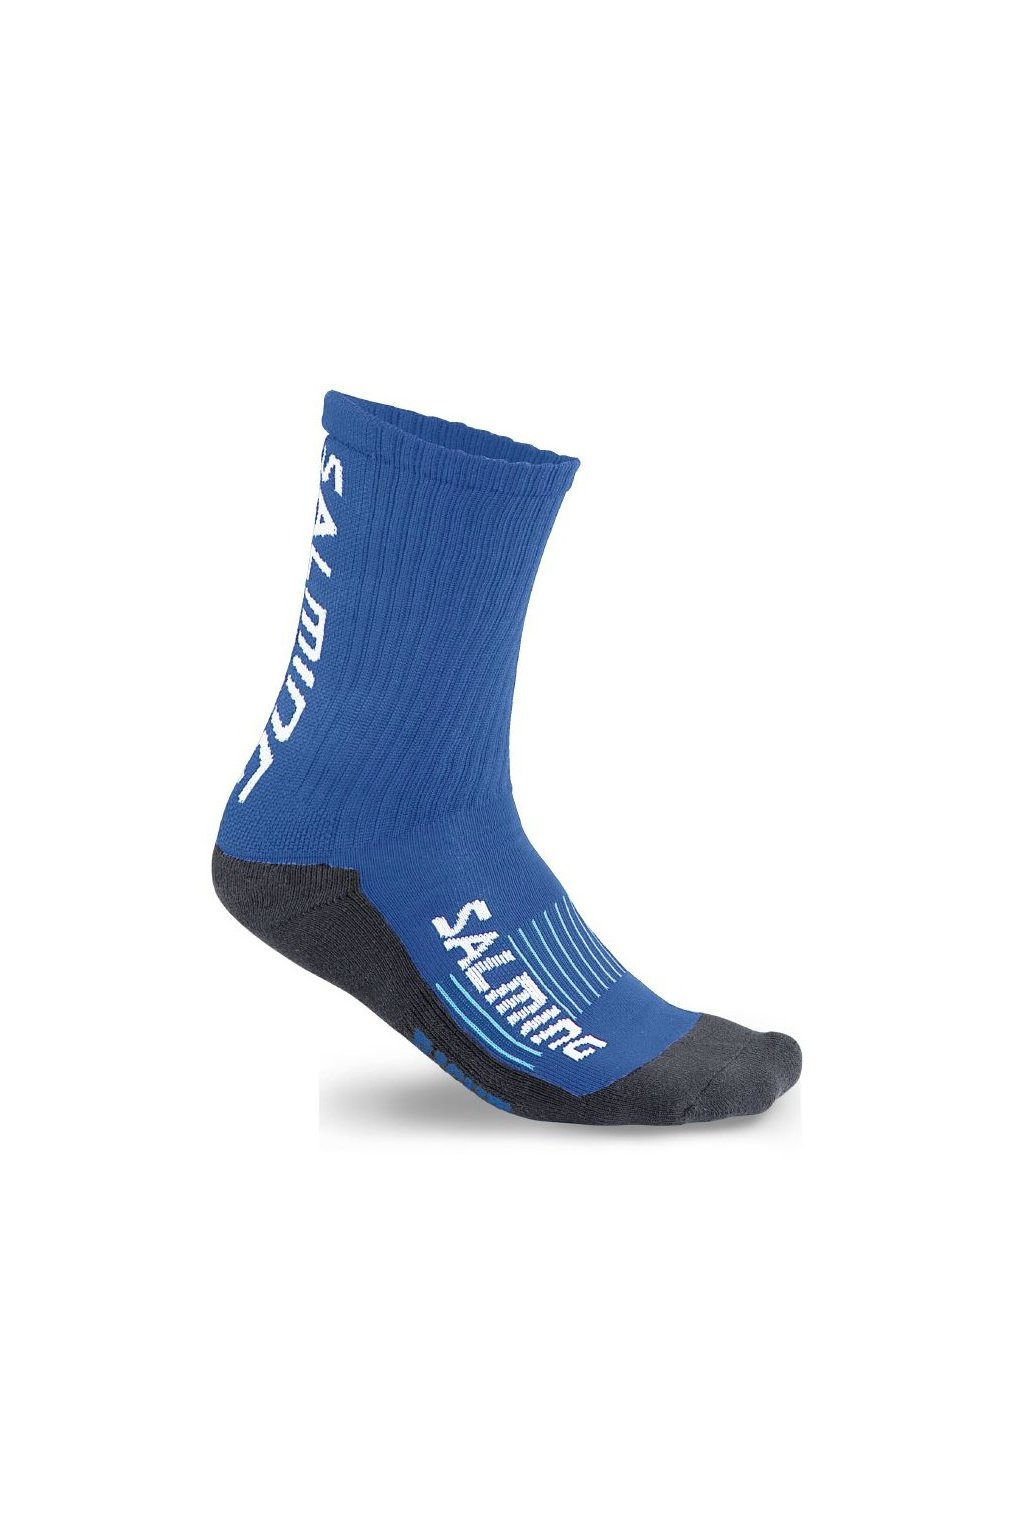 salming advanced indoor sock (1)